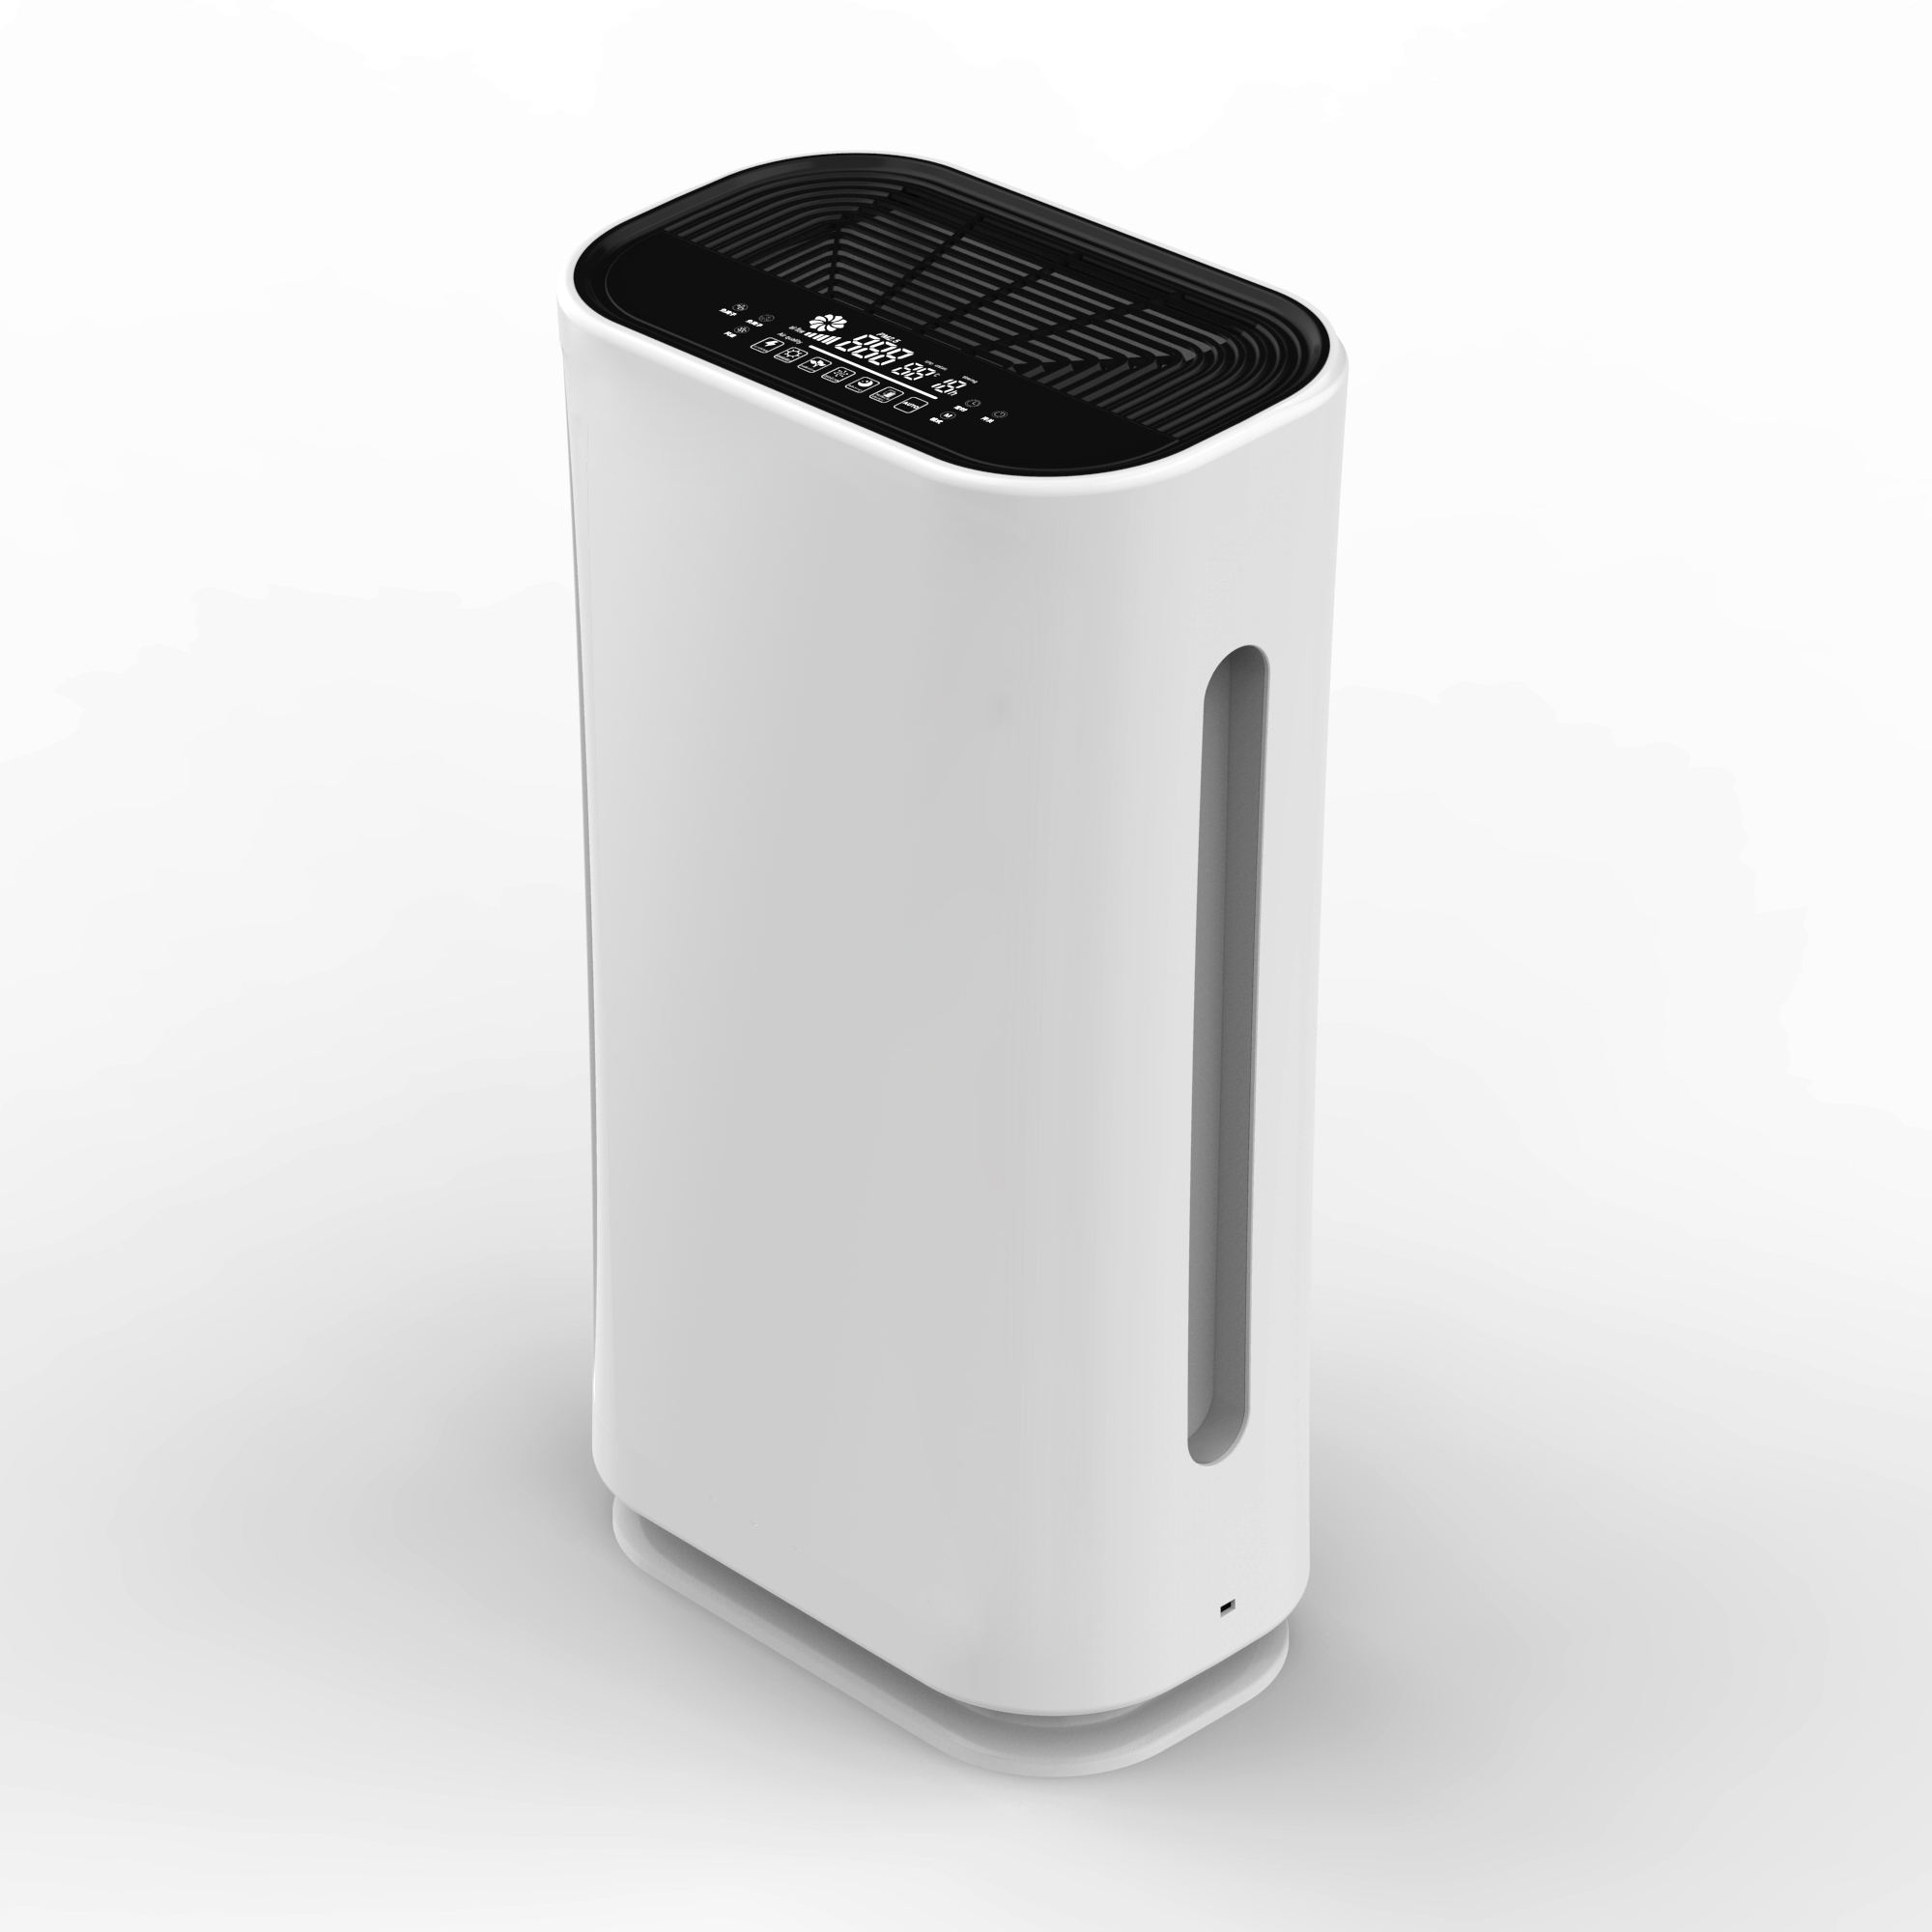 Air purifier manufacturer Hepa air purifier 220v air cleaner home